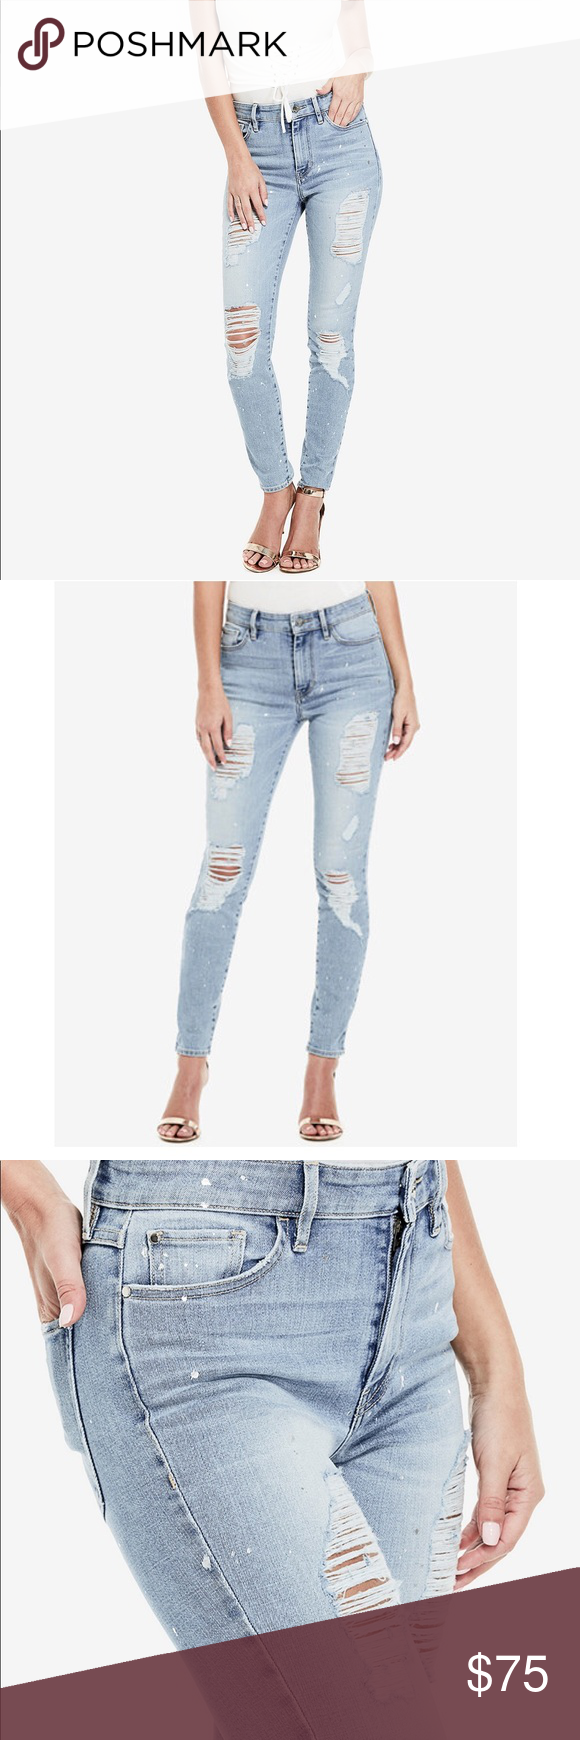 a276a8cb830 NWT {guess} light wash ripped skinny jeans! NWT new guess Los Angeles 1981